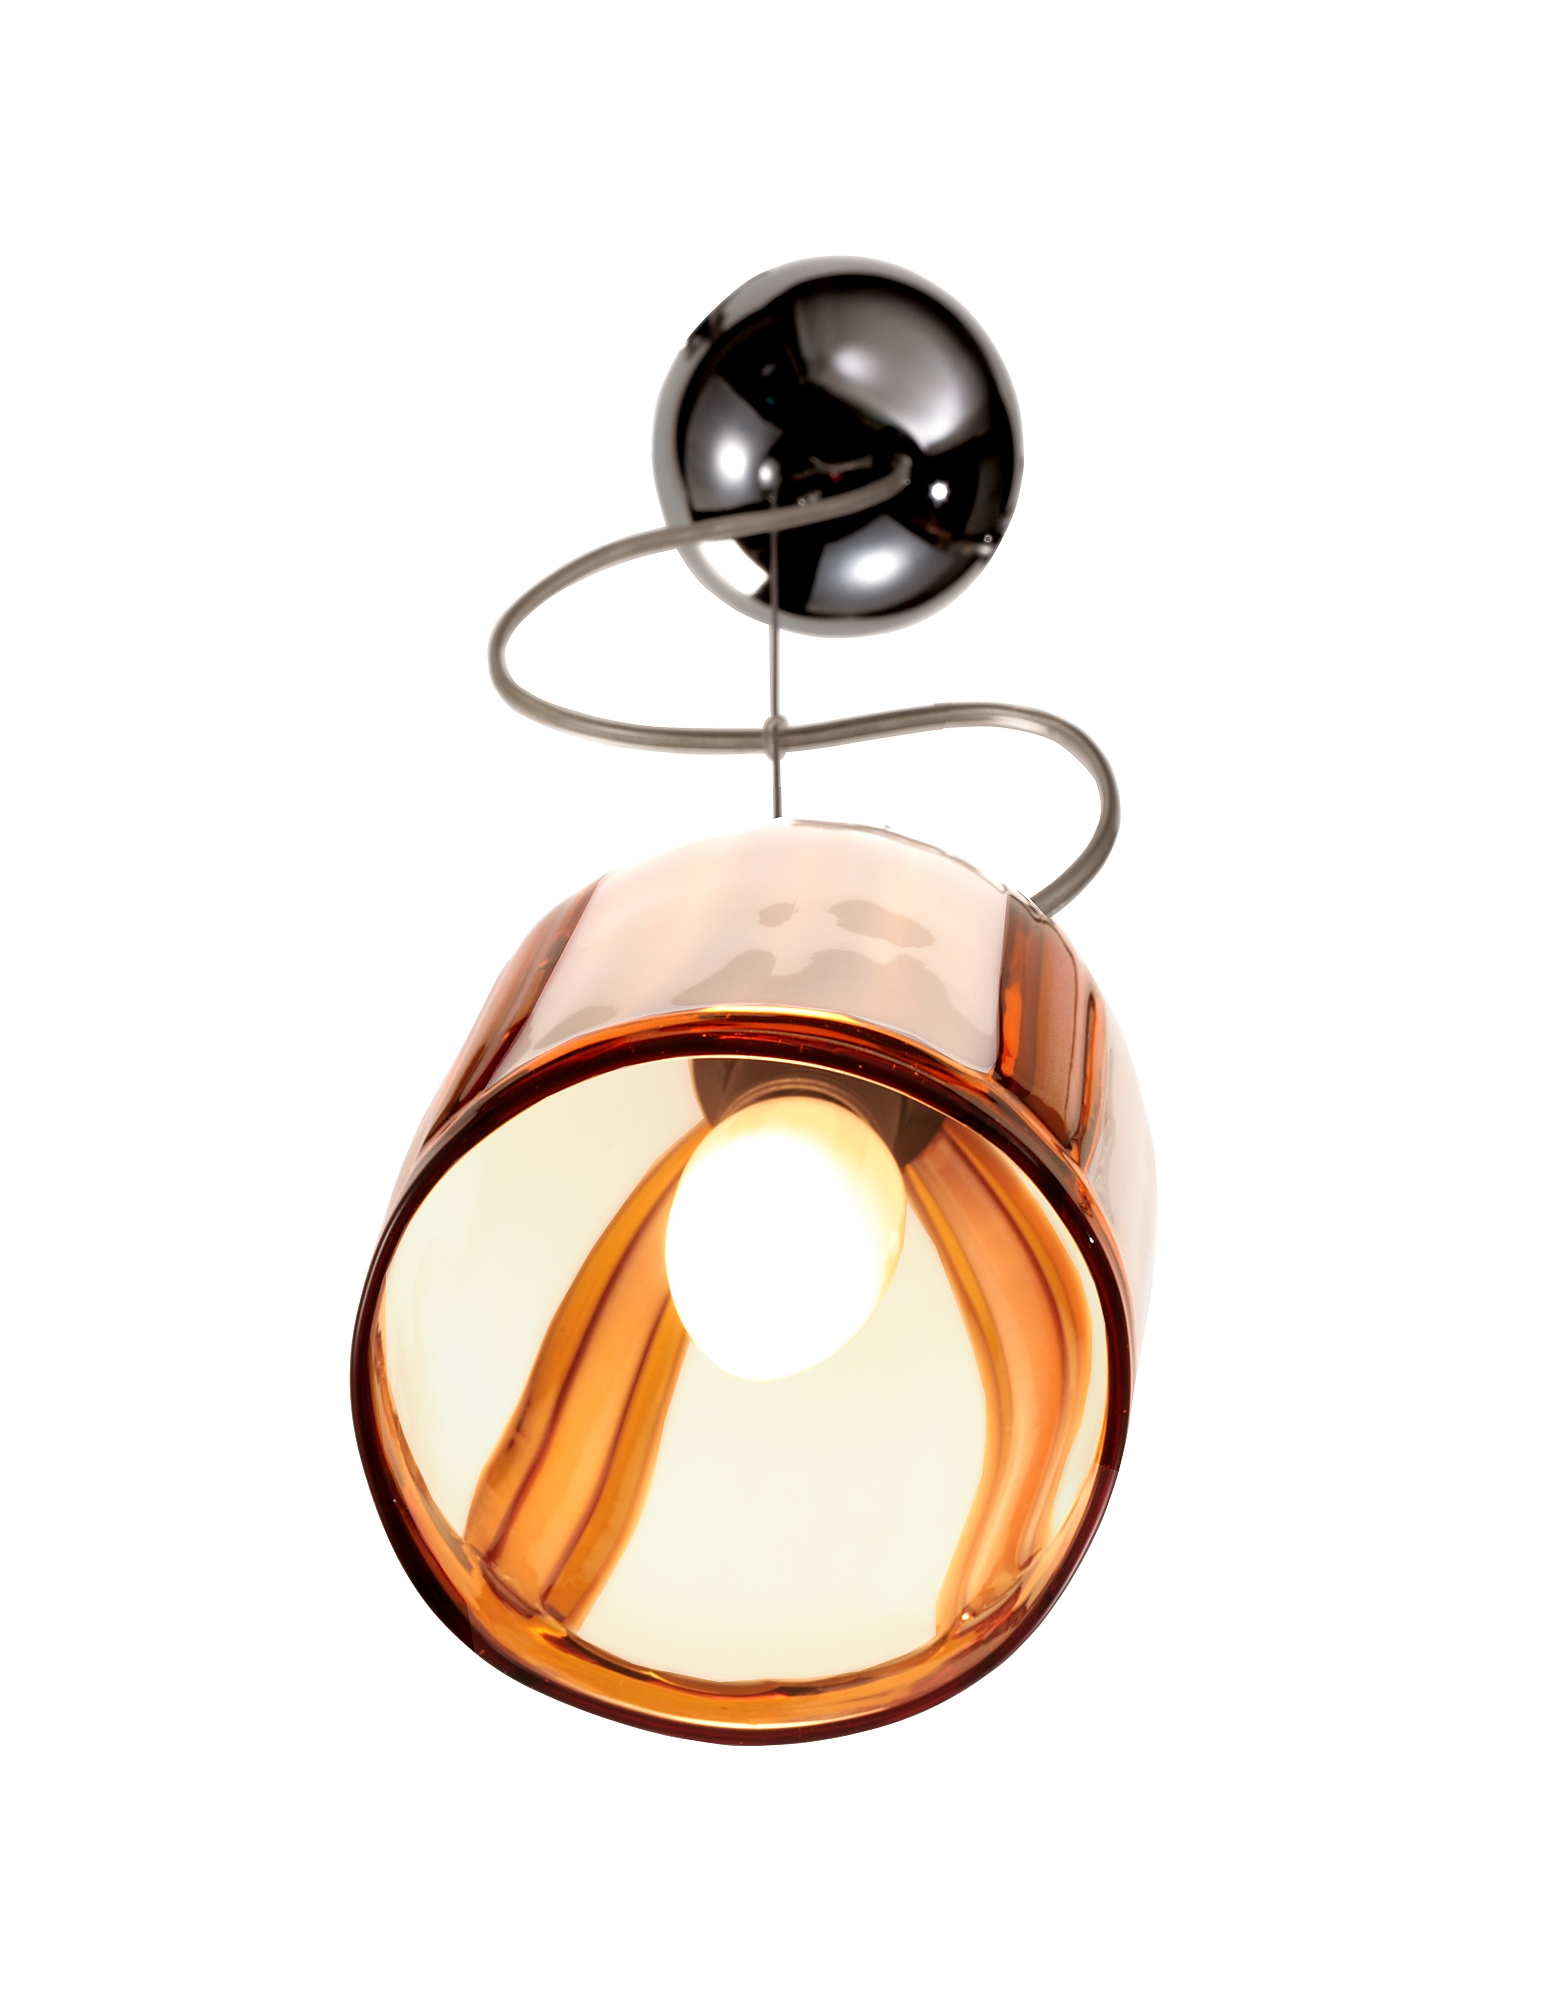 Bamboo - Cream and Amber Murano Handmade Glass Pendant Lamp от Forzieri.com INT